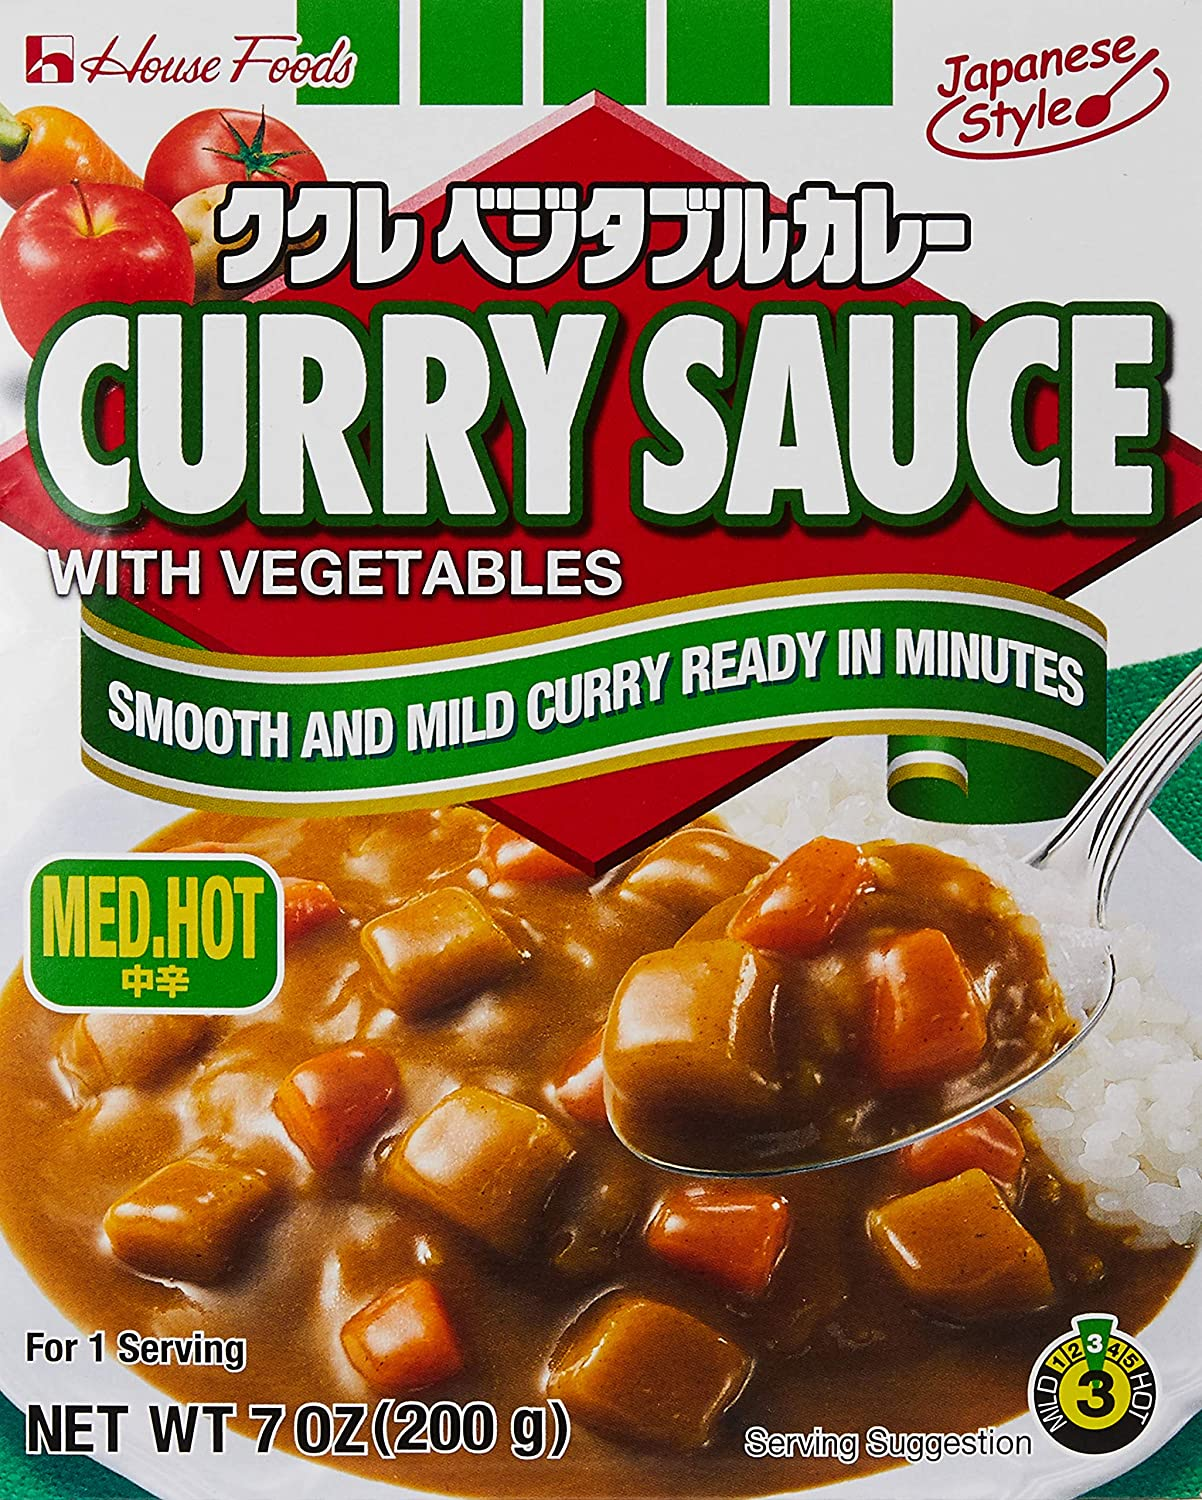 House Foods Curry Sauce with Vegetables, Medium Hot, 7.4 Ounce